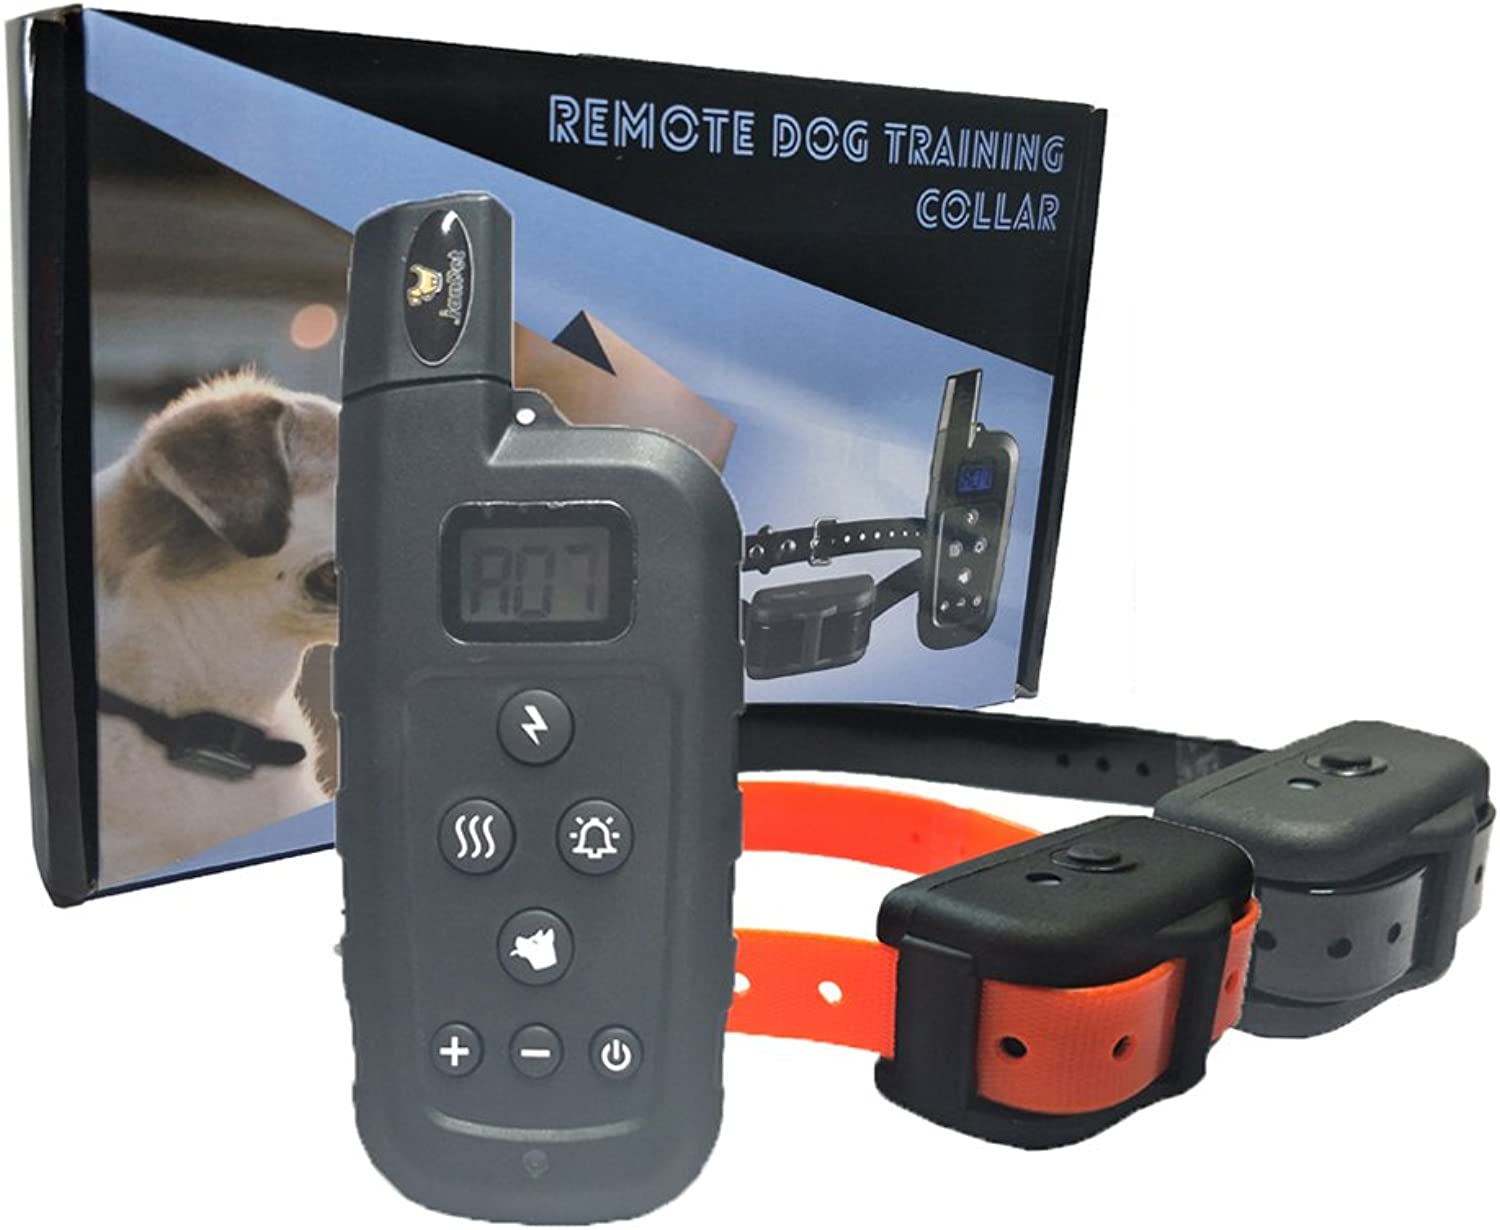 Electronic Collars Dog Training with Remote, 100% Waterproof Rechargeable Shock Collar for 2 Dogs, Range 600 Yards